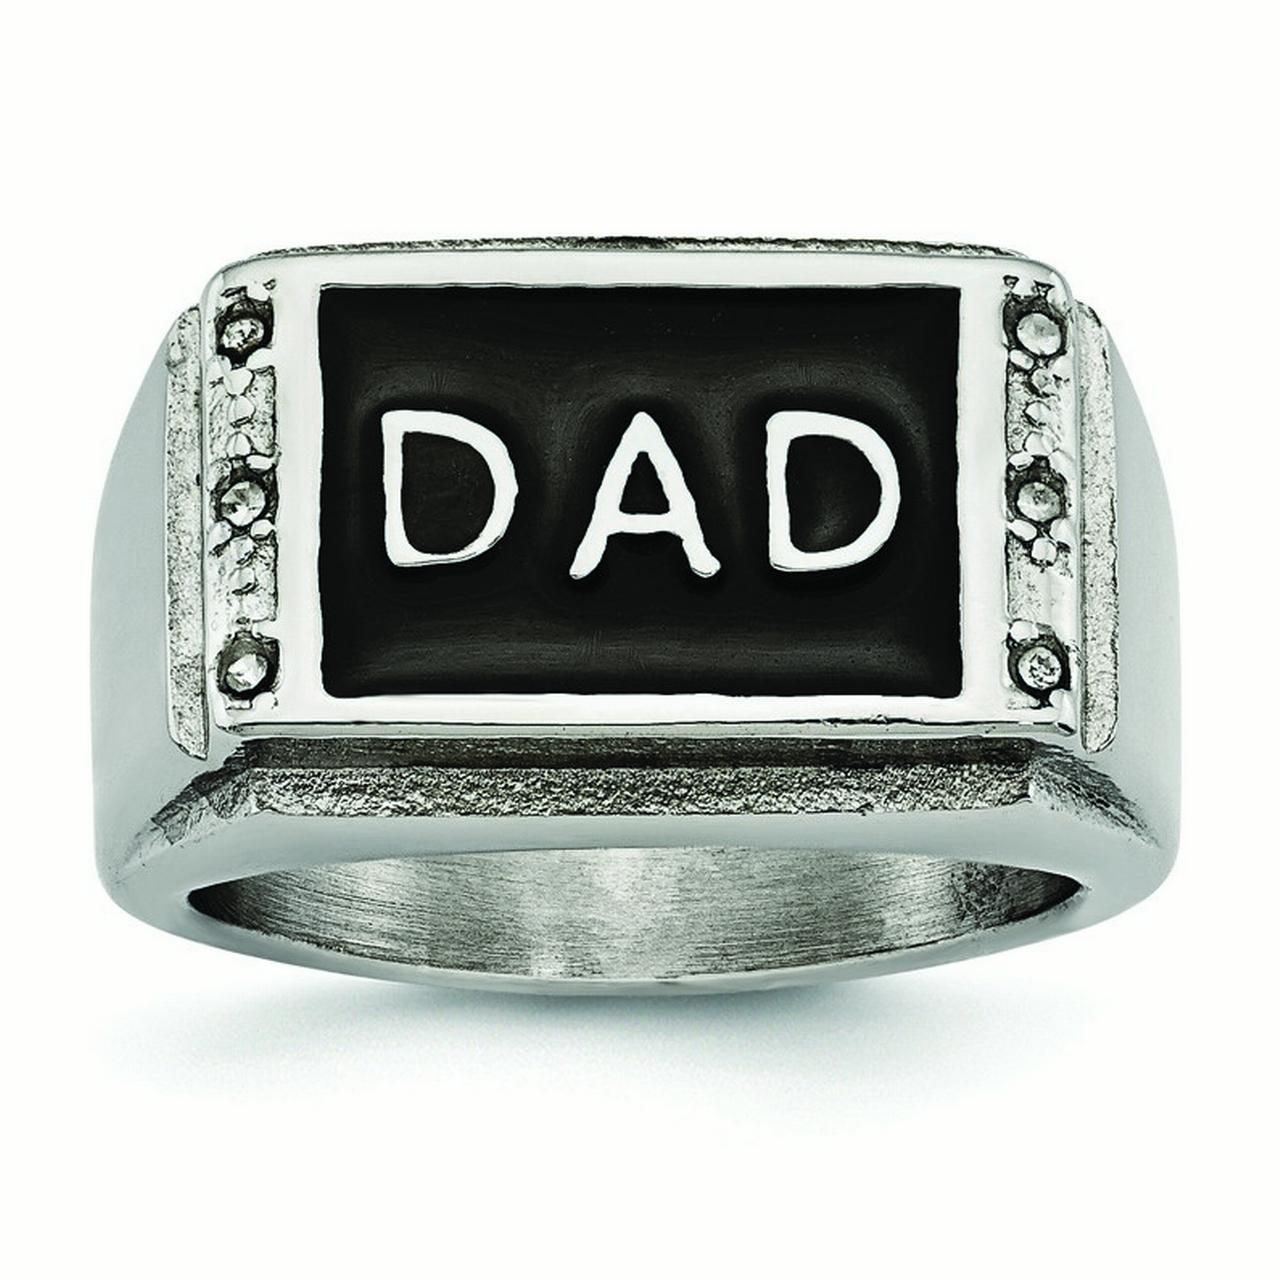 14.65mm Stainless Steel Polished Black Enameled CZ Dad Ring - Ring Size Options:  10 11 12 9